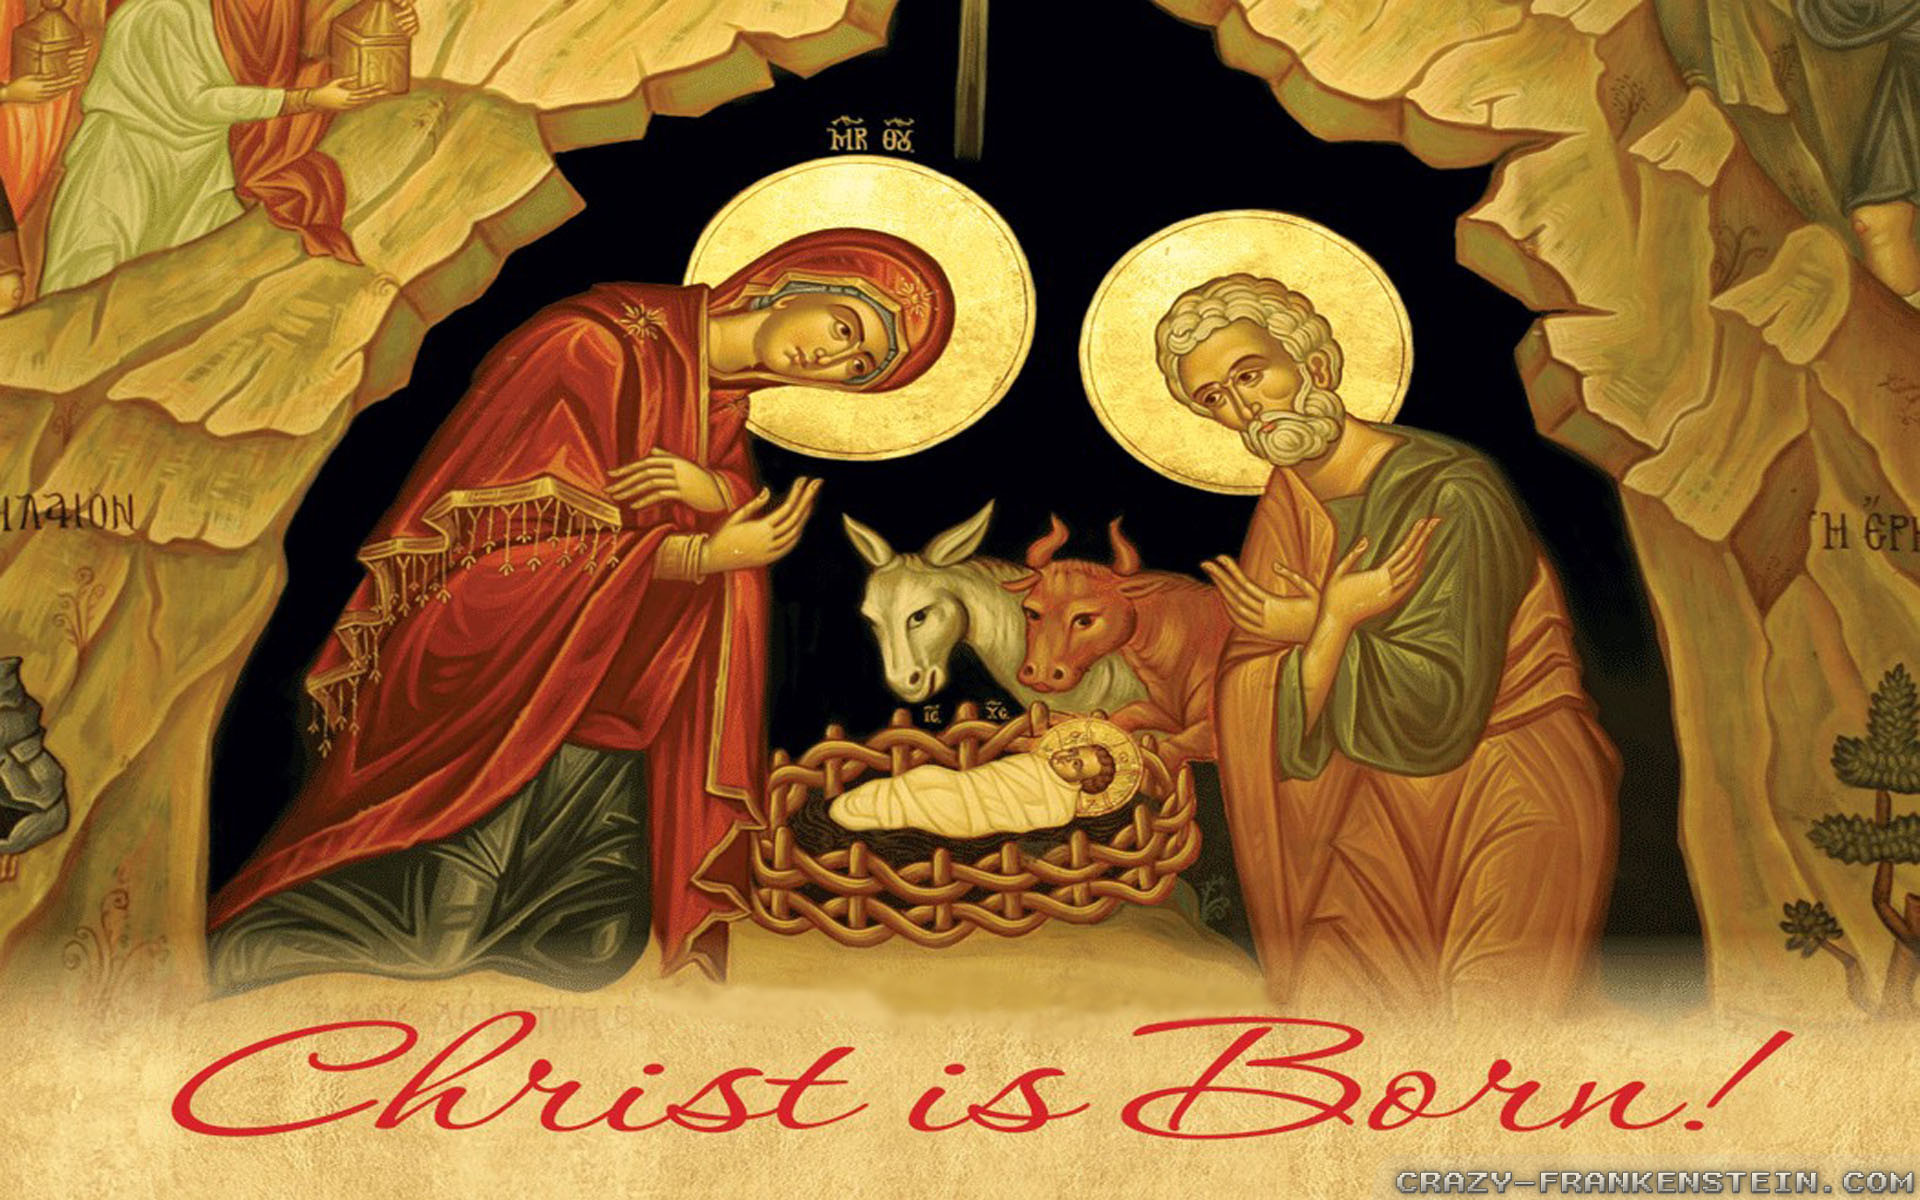 1920x1200 Wallpaper: Born Christian Christmas wallpapers. Resolution: 1024x768 |  1280x1024 | 1600x1200. Widescreen Res: 1440x900 | 1680x1050 |